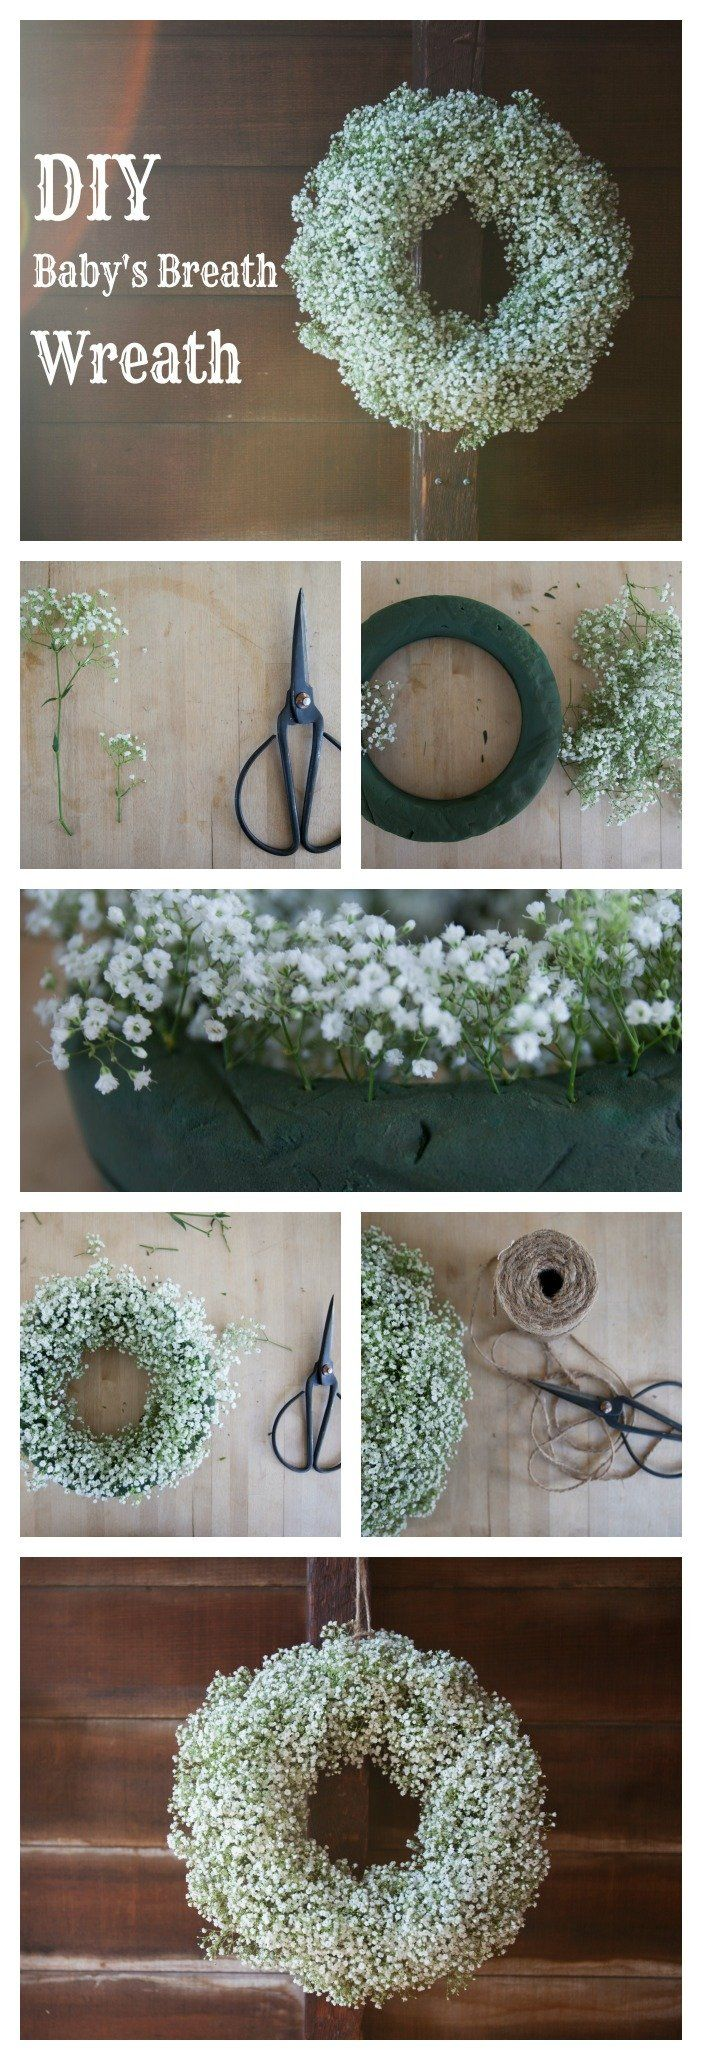 DIY Baby's Breath Wreath. Cool and real-looking baby's breath at Michael's